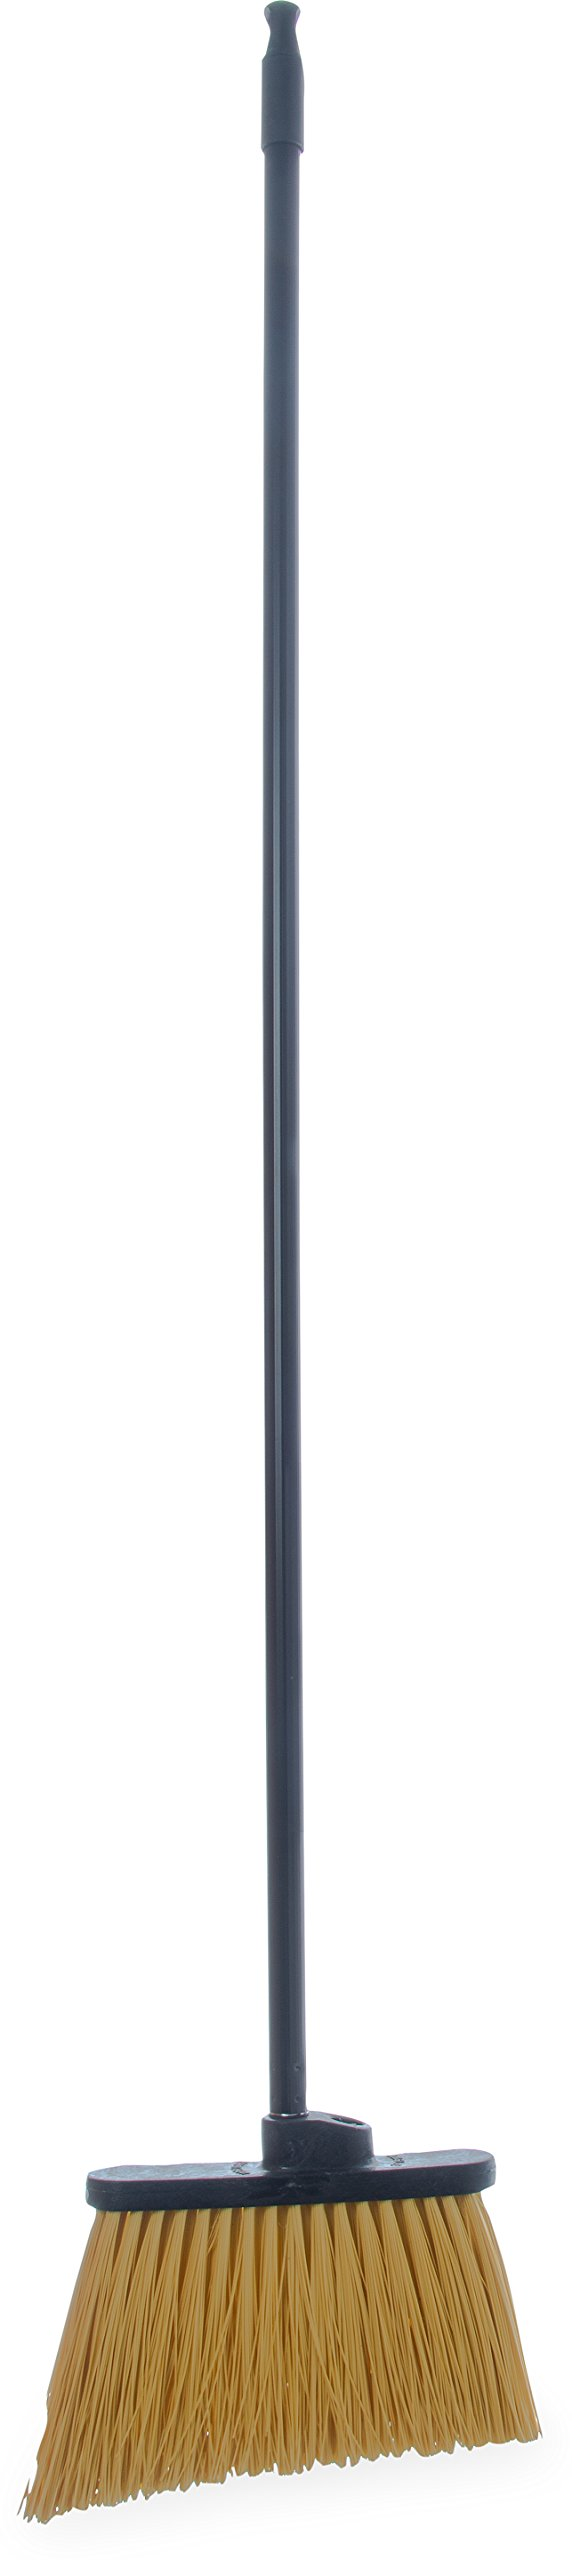 Carlisle 3688500 Duo-Sweep Unflagged Angle Broom, 56'' Length